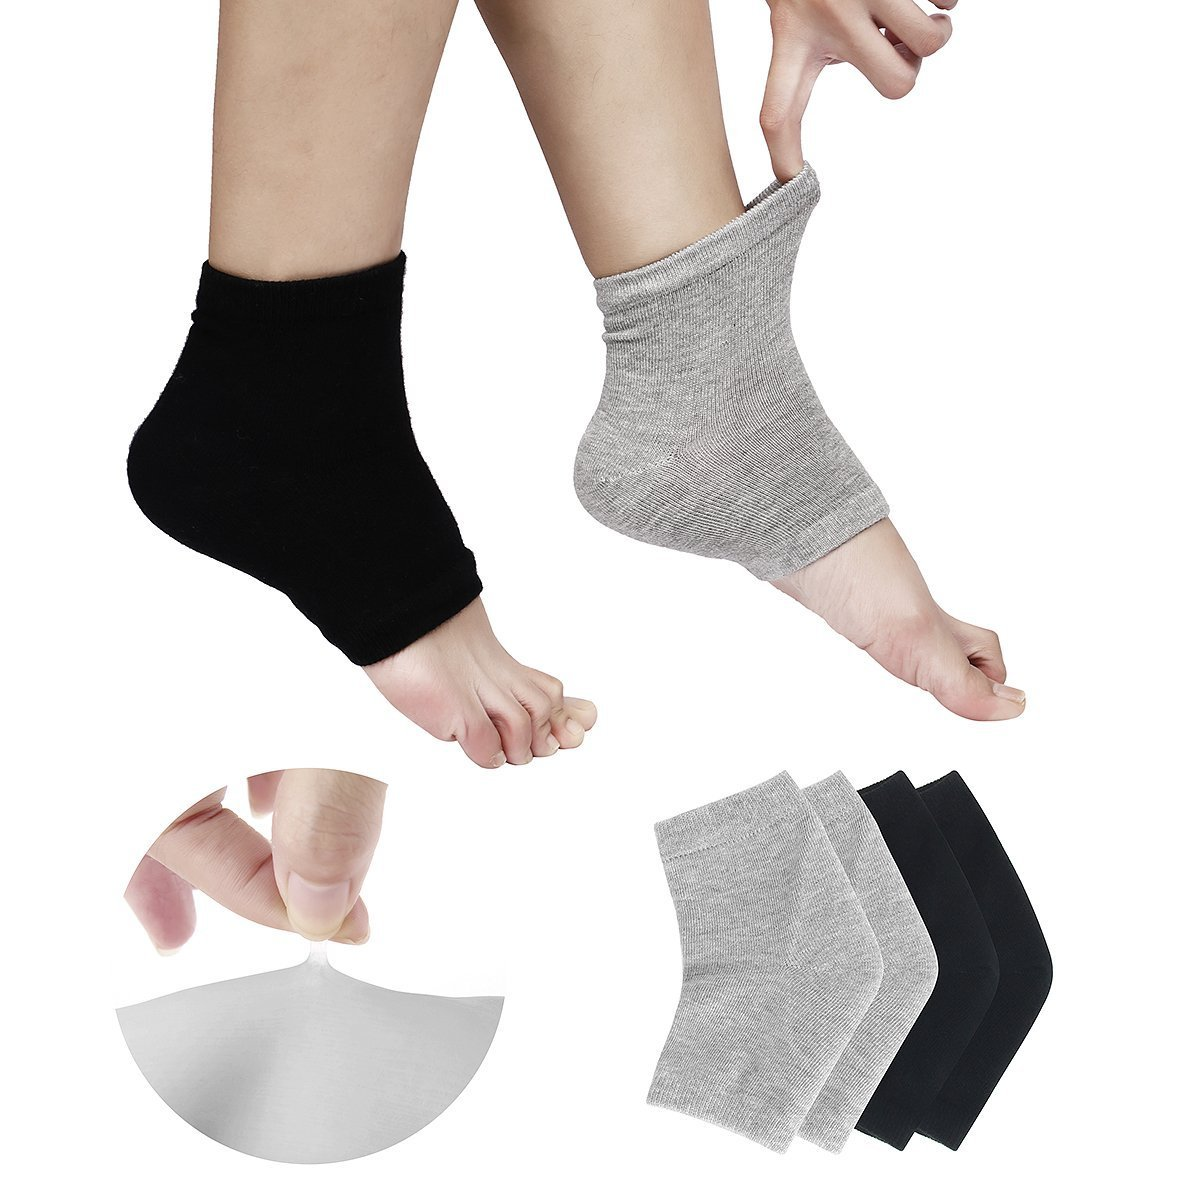 EXPER Moisturizing Gel Heel Socks for Women Men's Dry Cracked Rough Feet Skin Day Night Free Size Open Toe Humectant Moisturizer Heels sleeve Pack of 2 Pairs (Black + Grey)